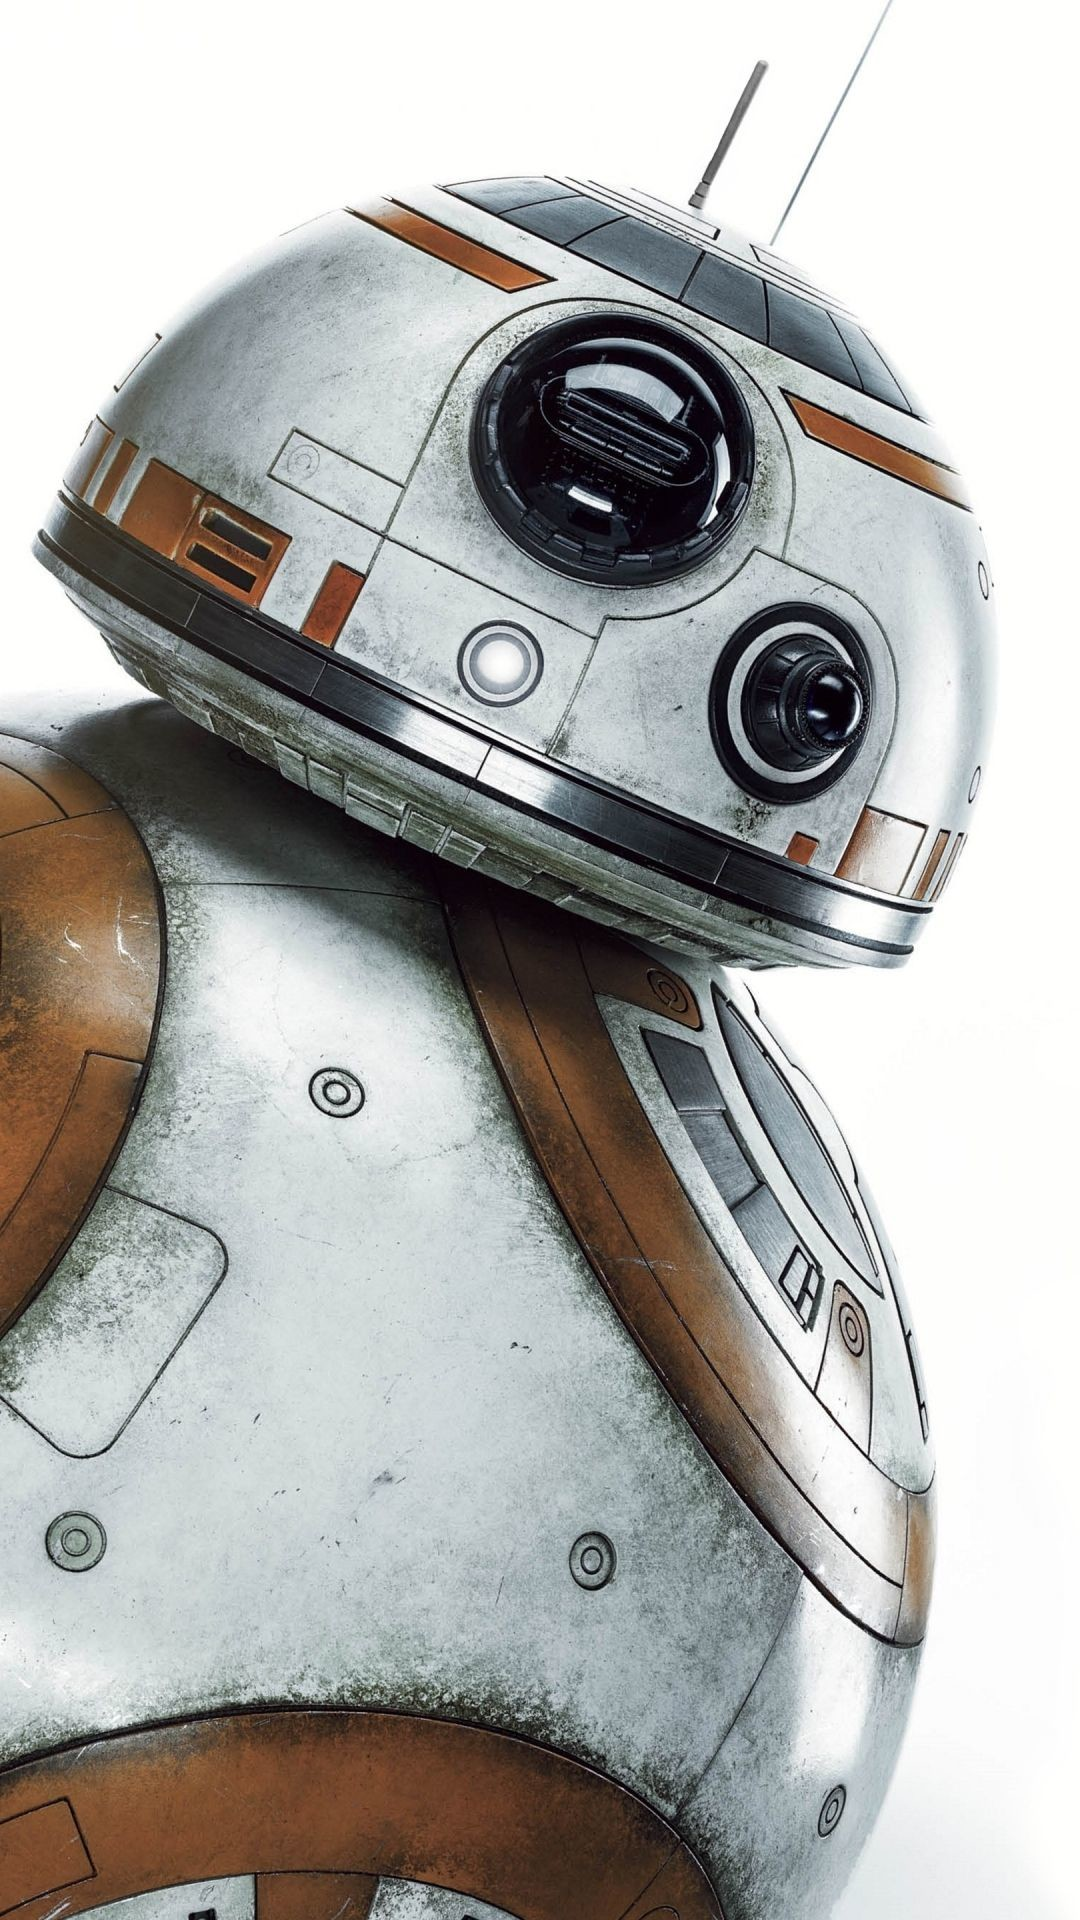 BB-8 Droid Star Wars Movie Android Wallpaper …